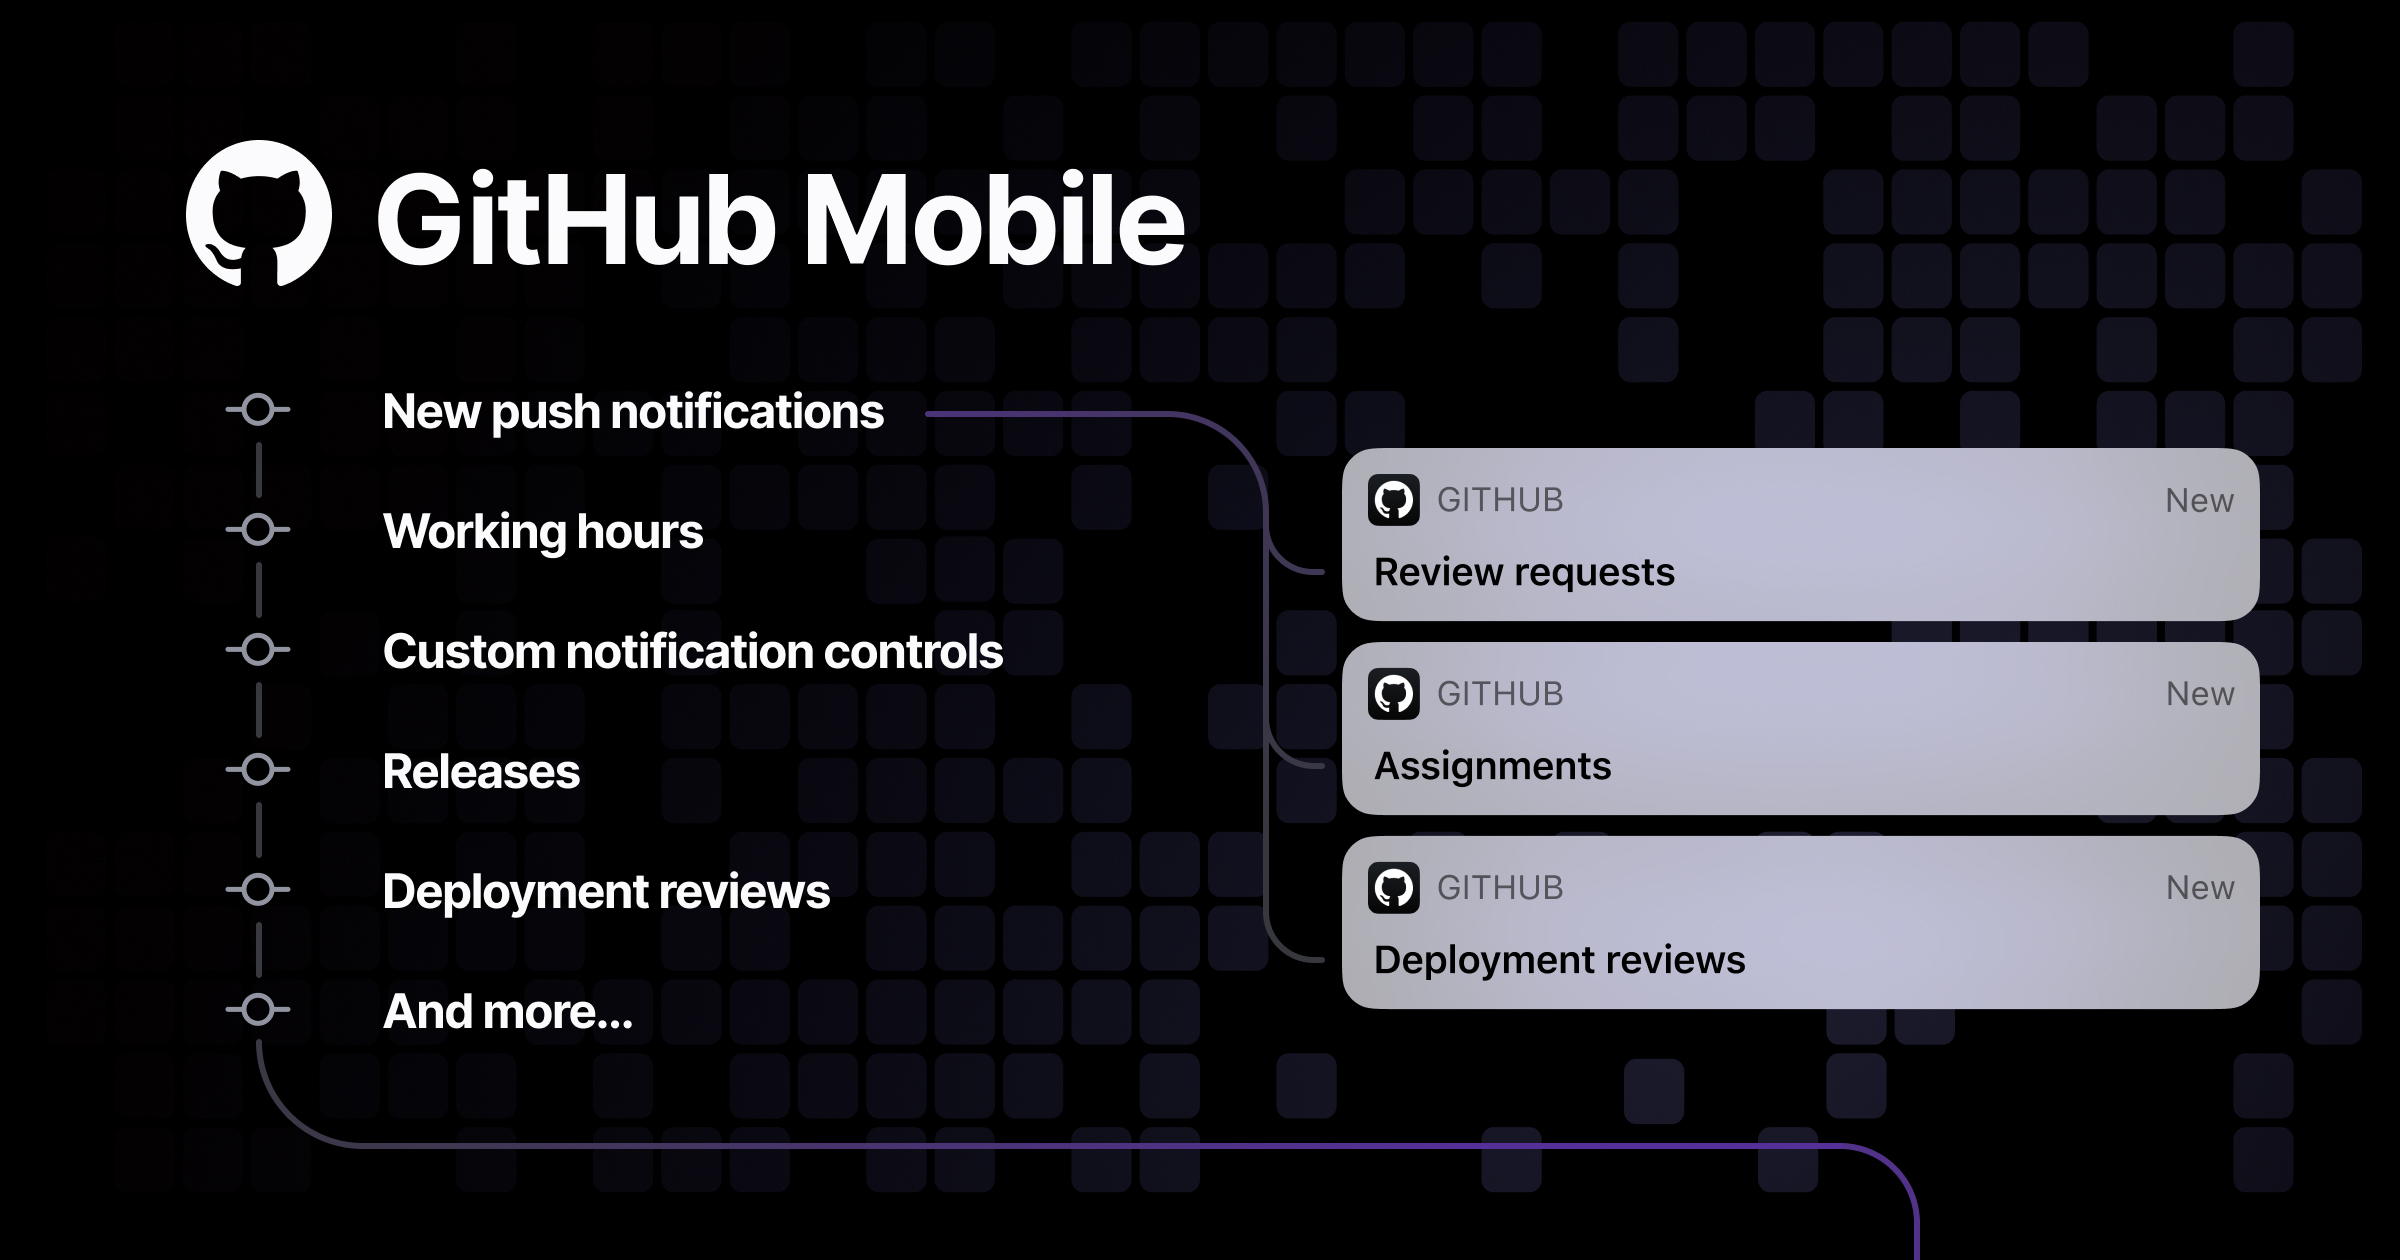 Introducing new push notifications, scheduling, releases and more on GitHub Mobile - The GitHub Blog